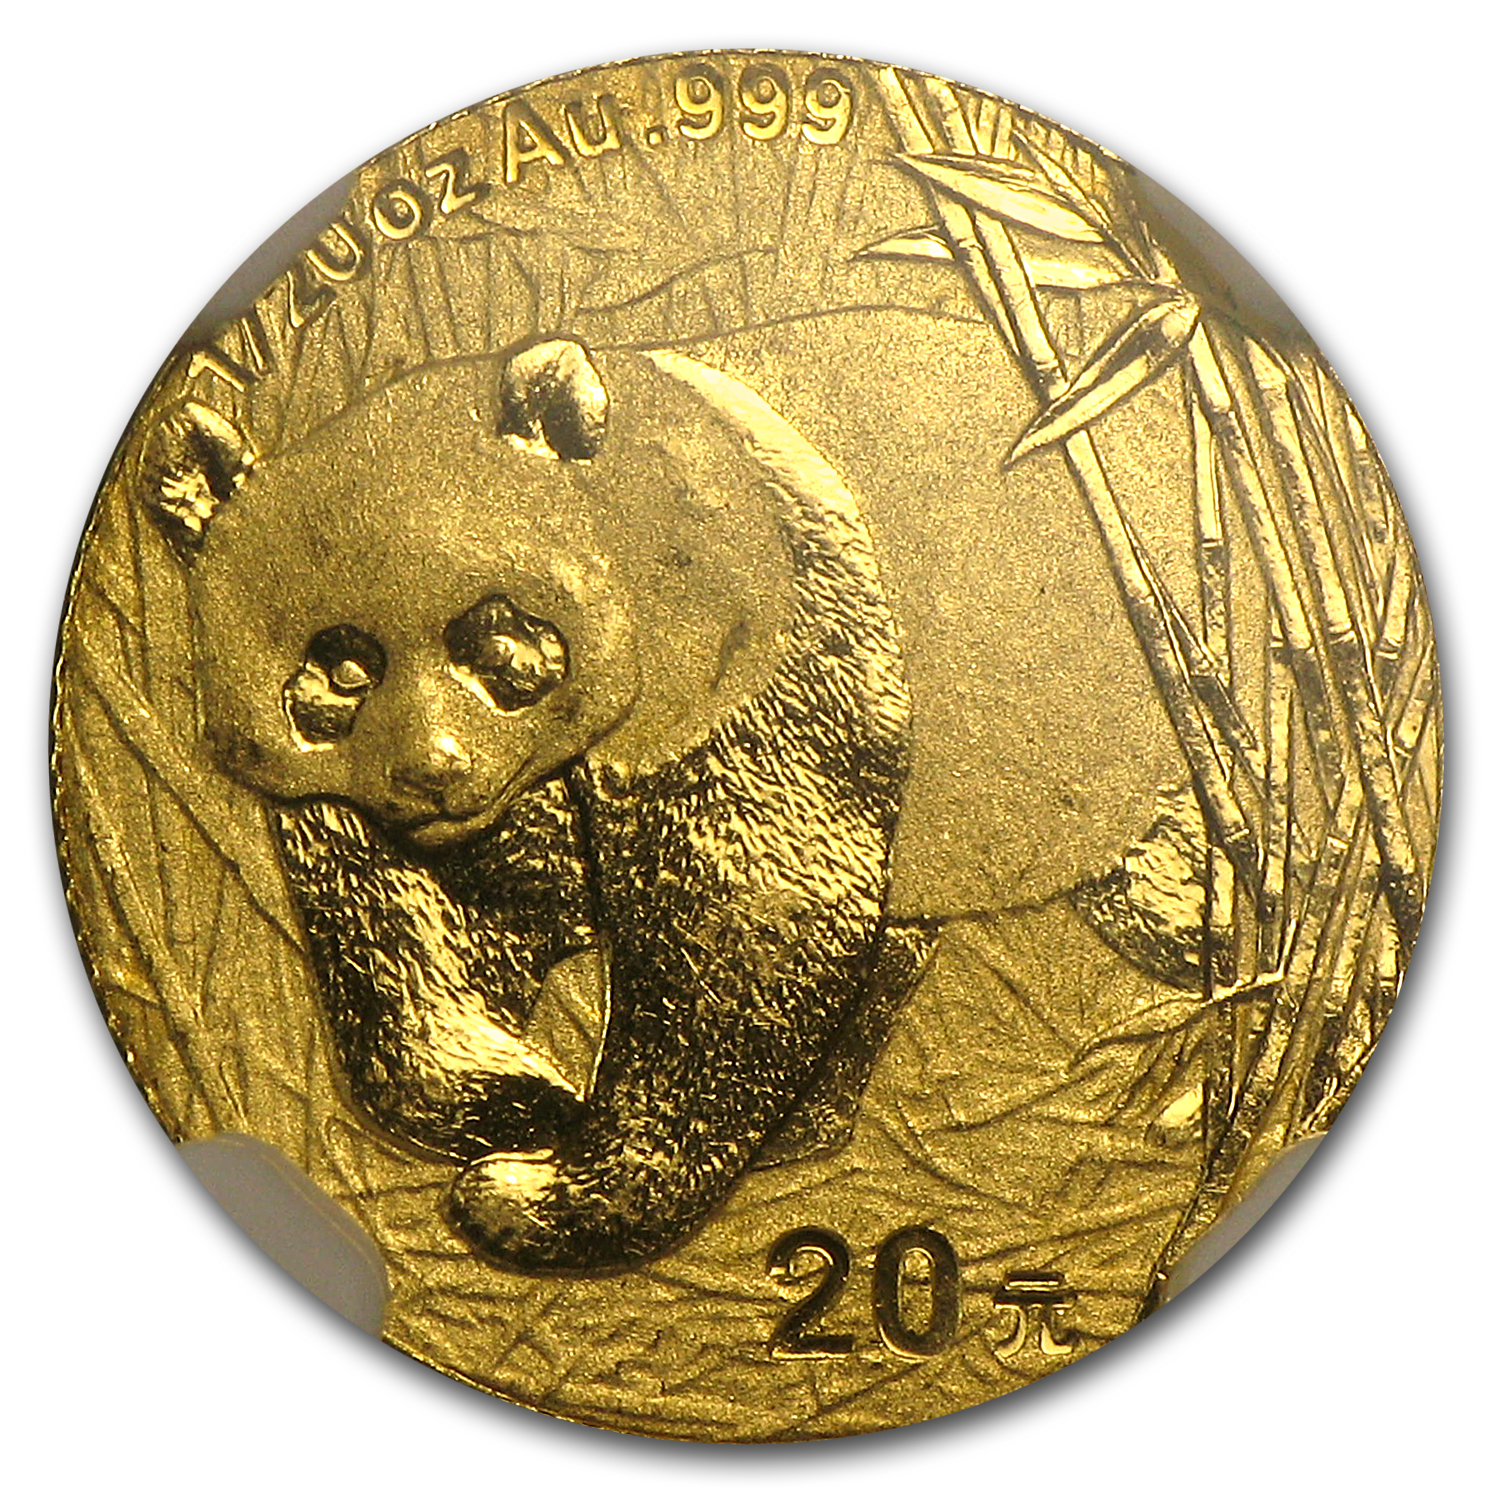 2001 China 1/20 oz Gold Panda MS-63 NGC